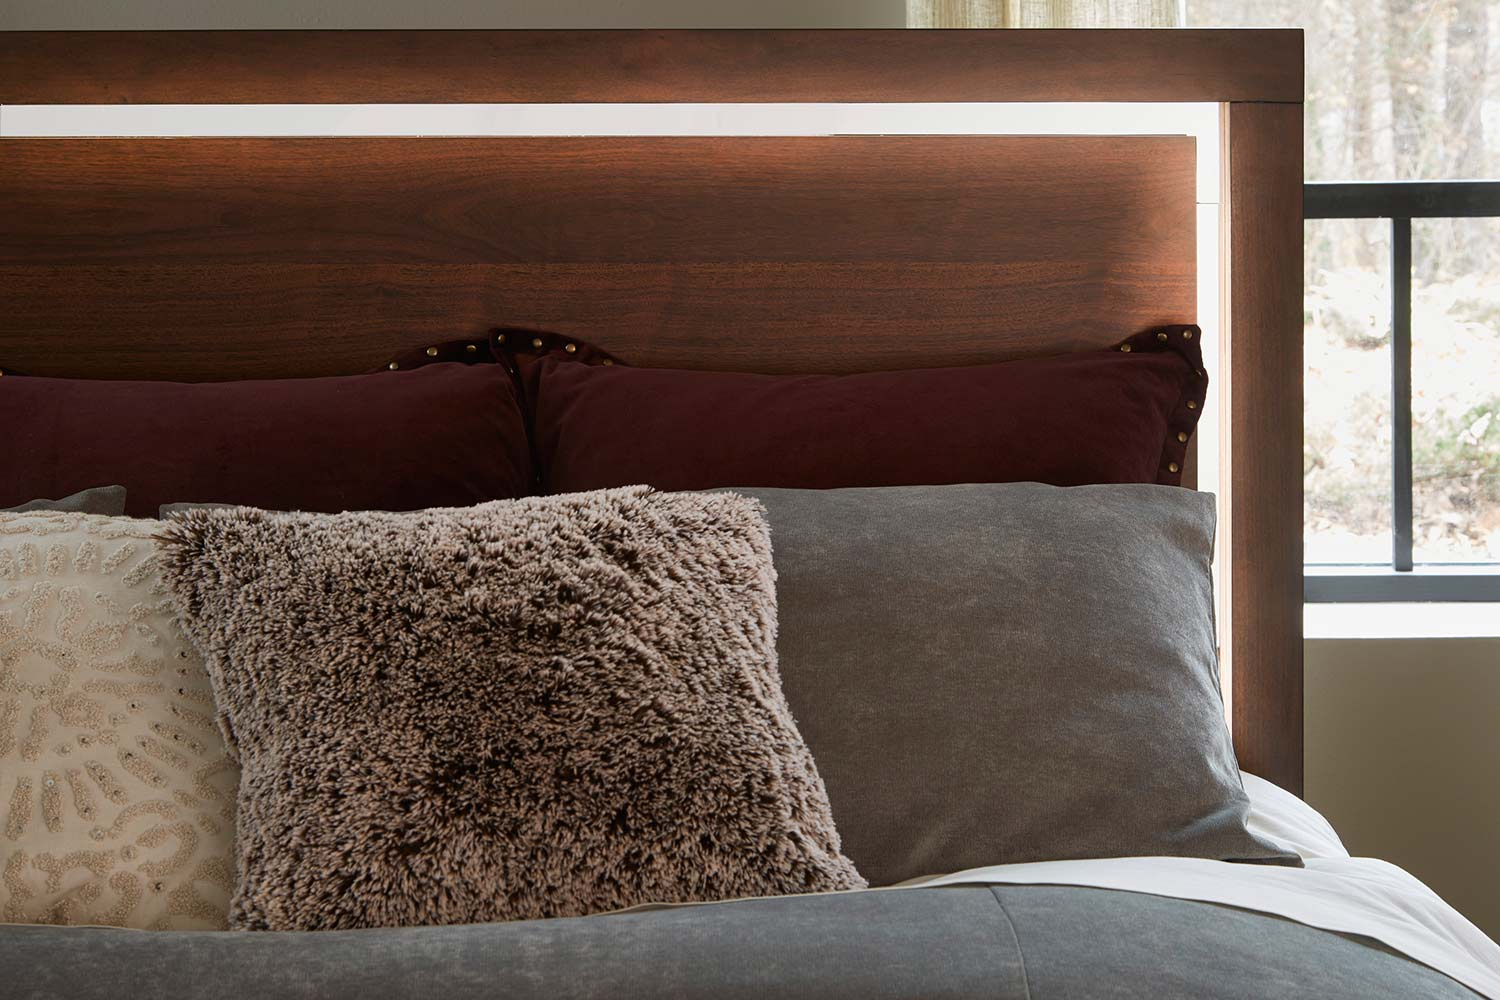 Homelegance Ingrando Platform Bed - Walnut - LED